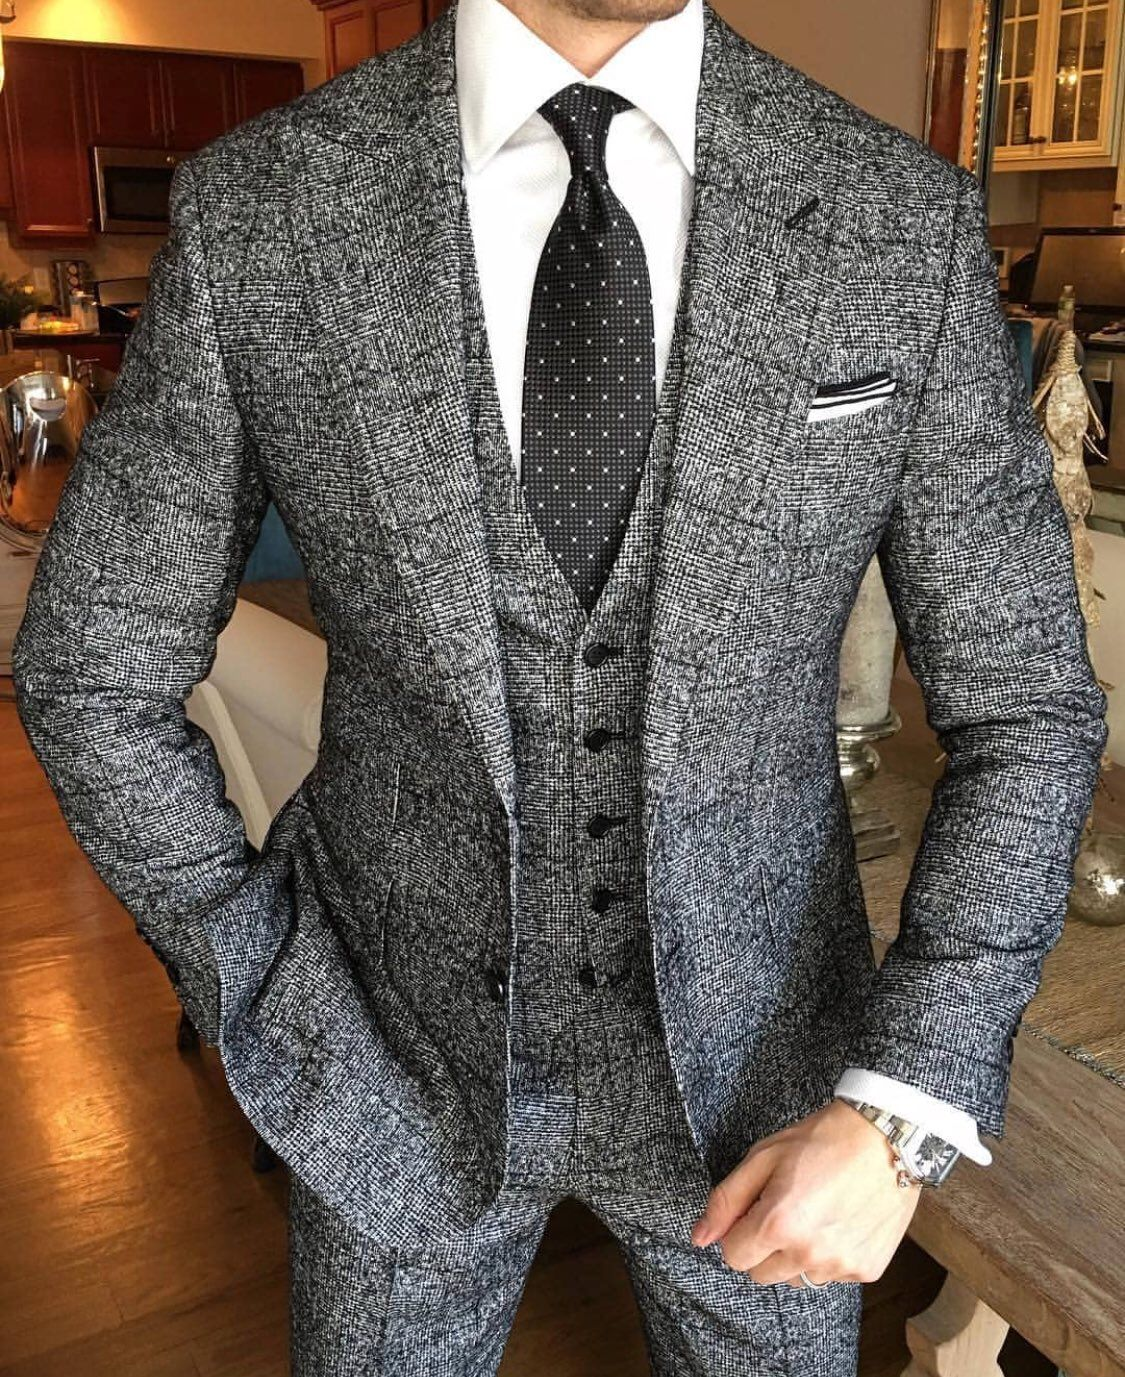 The Gentleman on Twitter is part of Hipster mens fashion - Rt if you would wear this 😍""